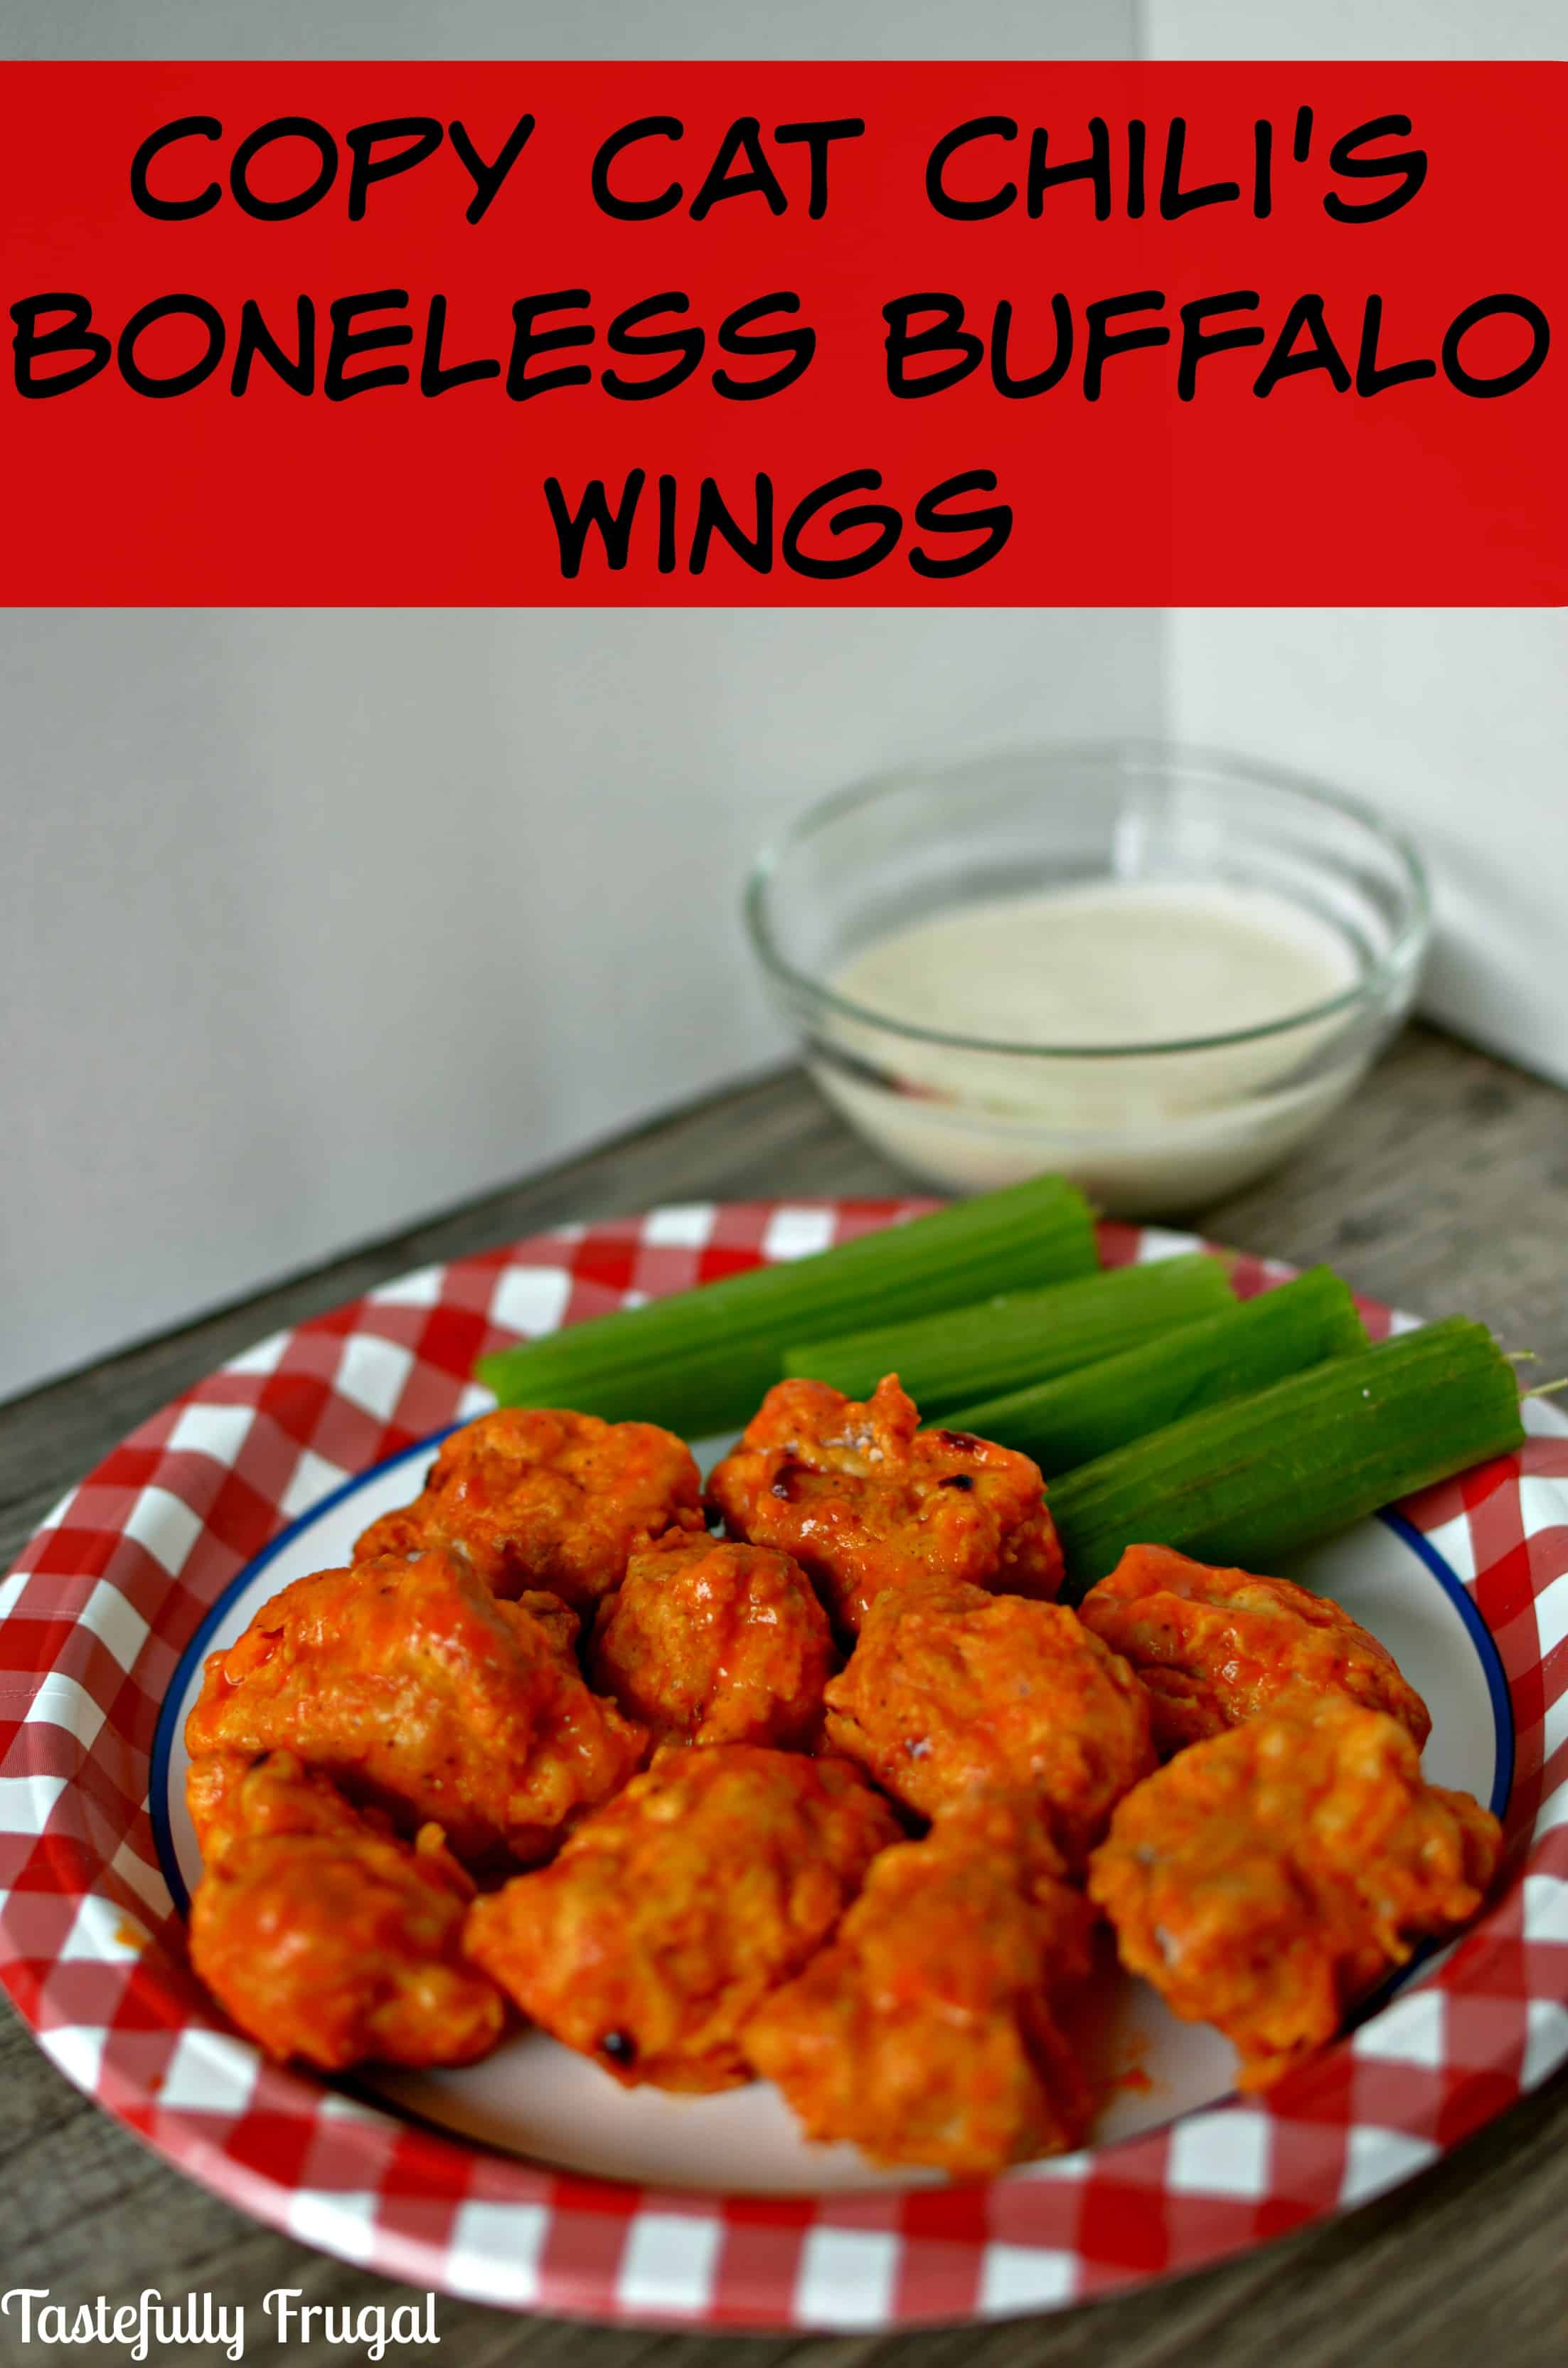 Try the healthier version of Chili's Boneless Buffalo Wings at home.